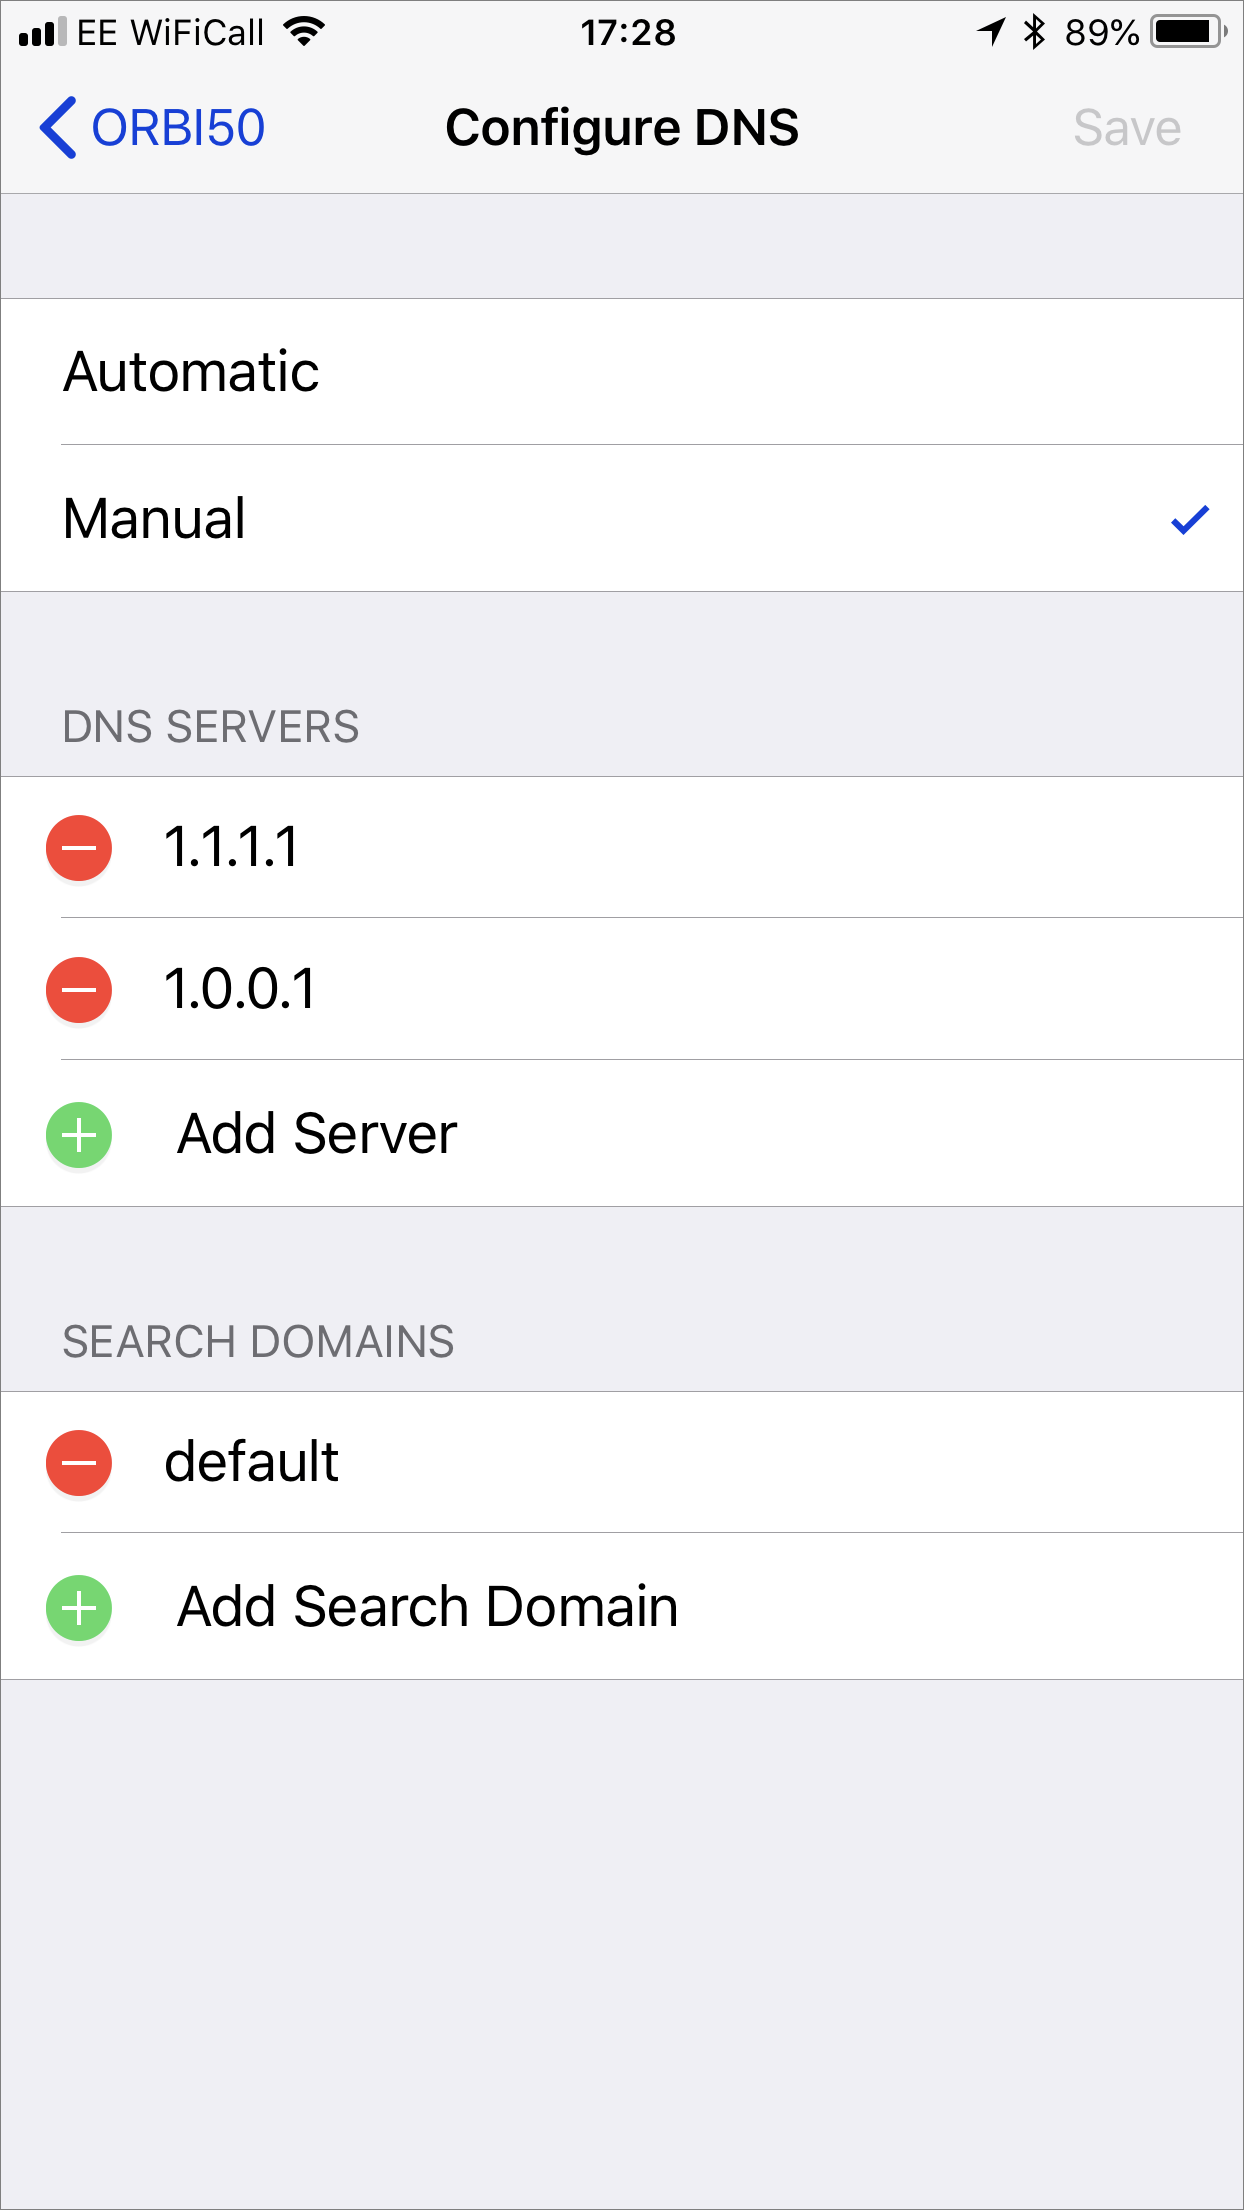 How to Use Cloudflare's 1 1 1 1 Public DNS (And Why You